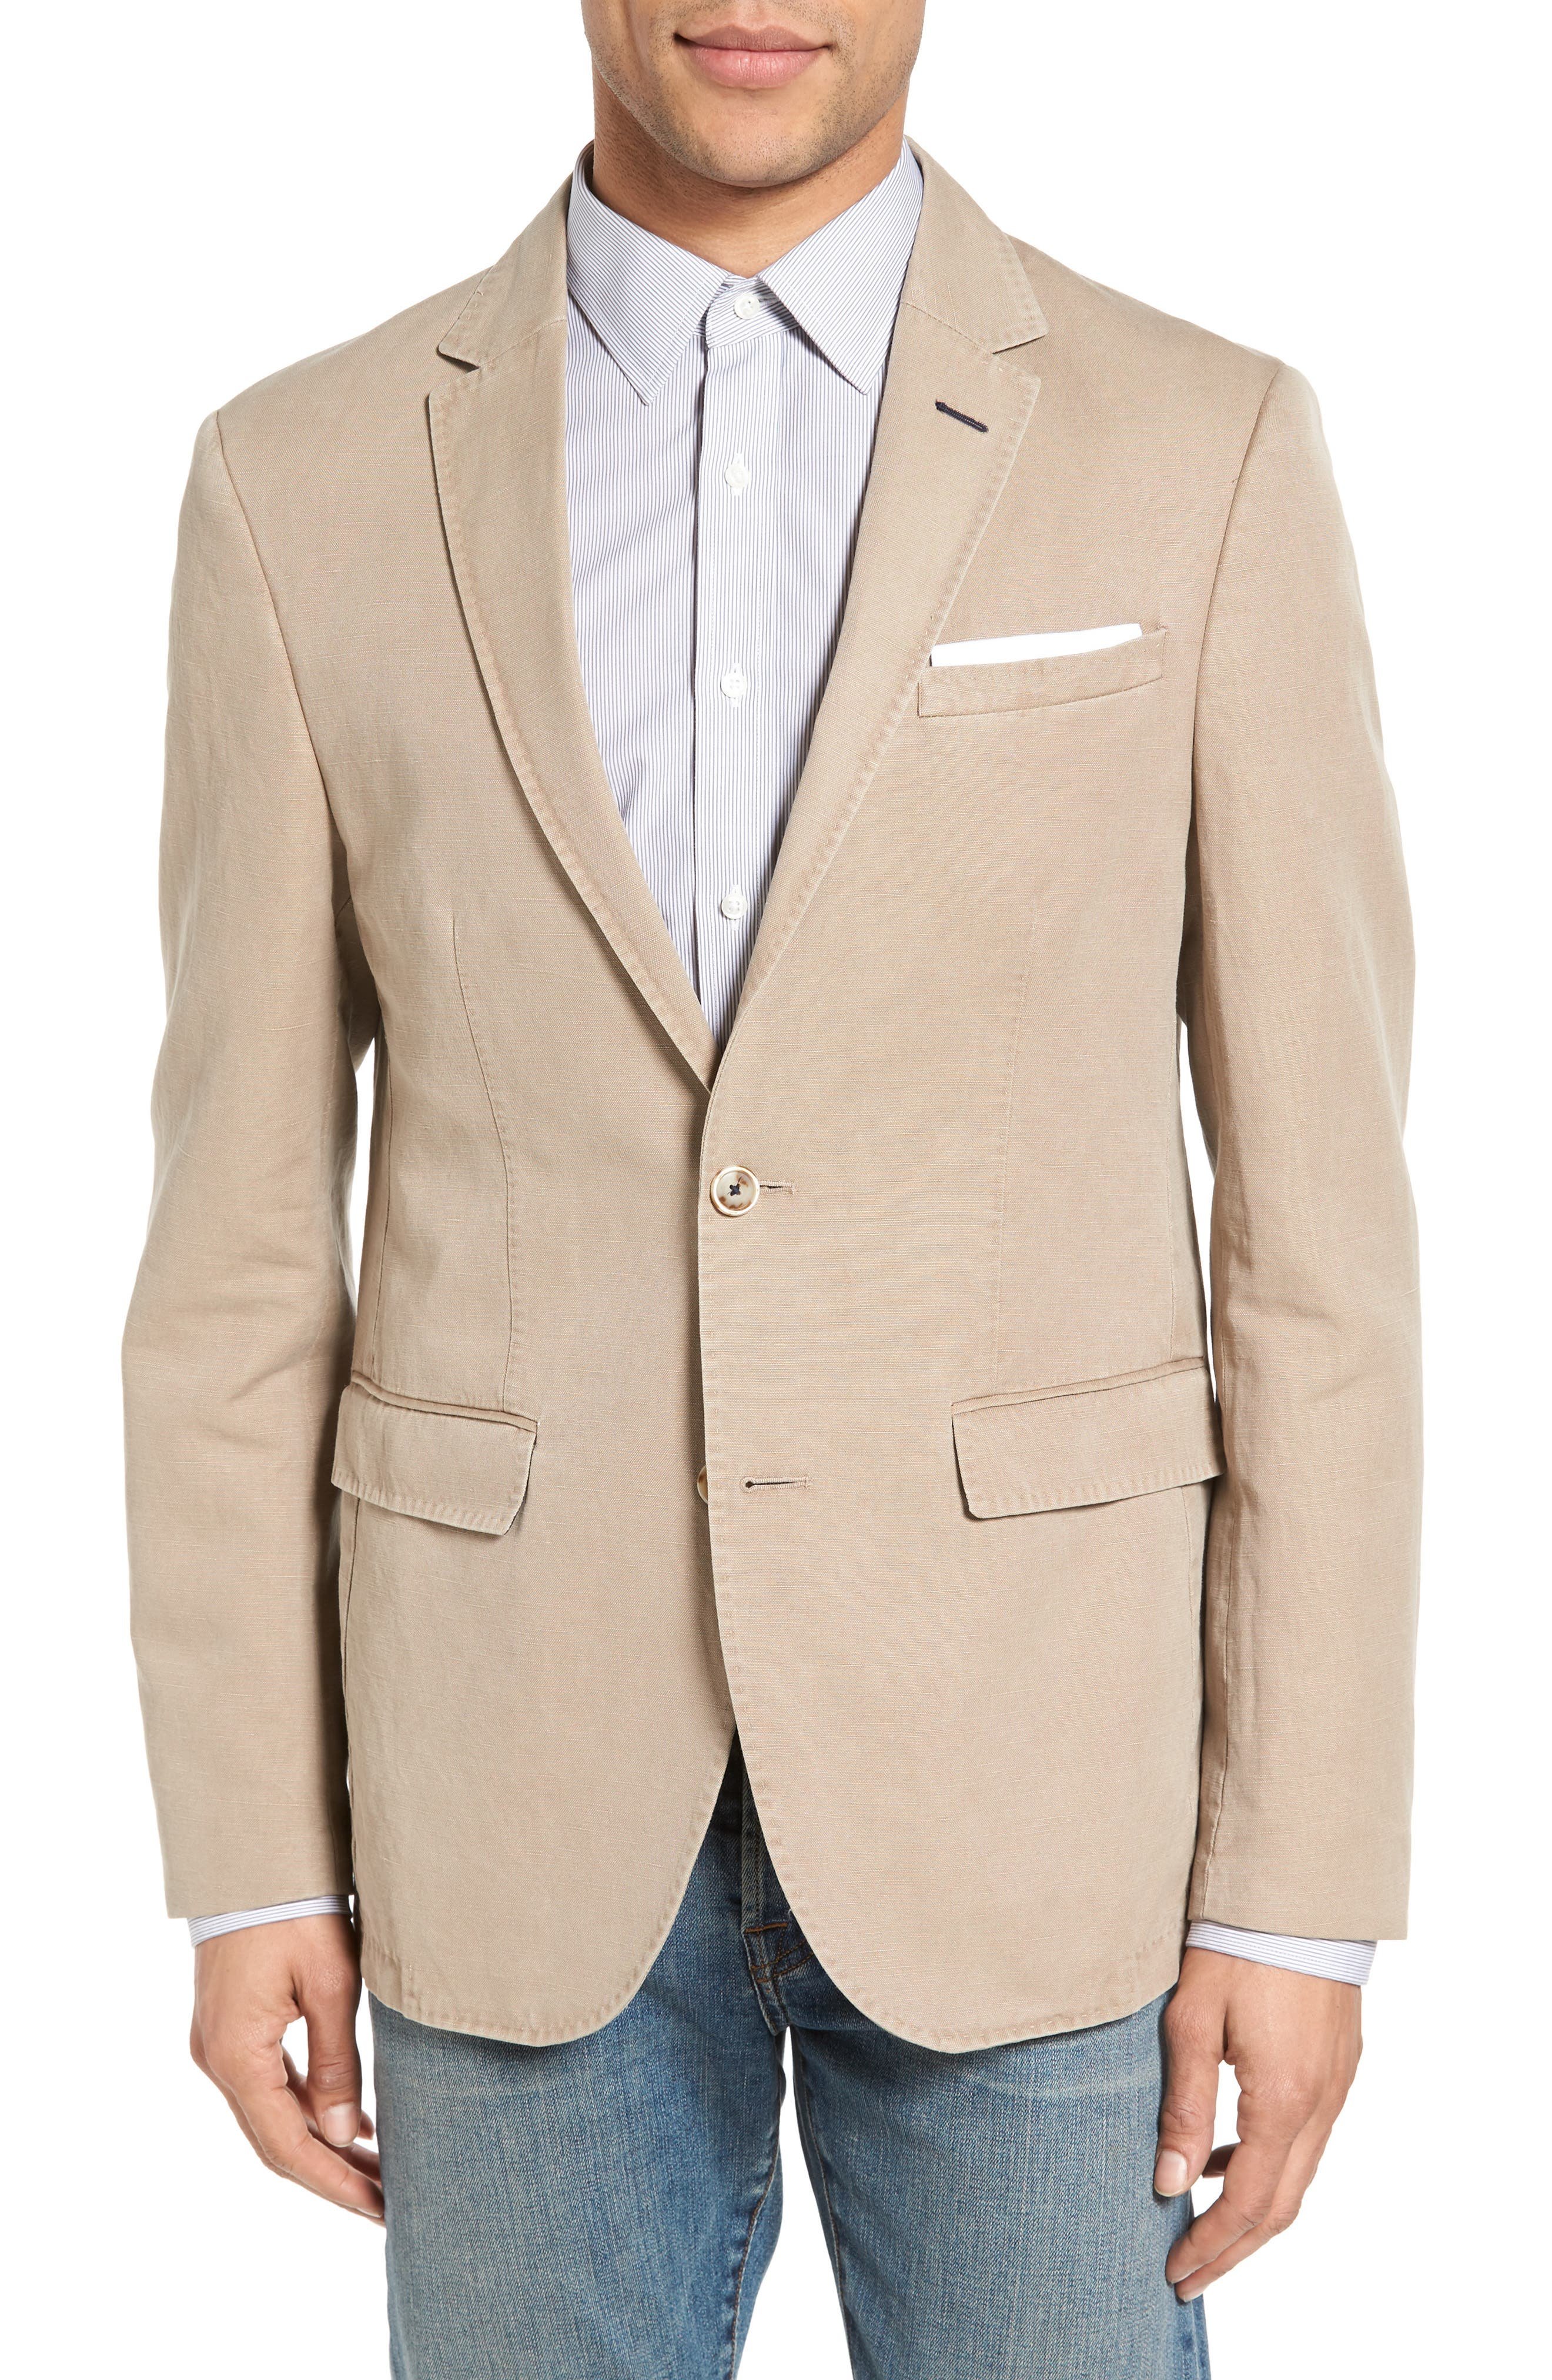 Trim Fit Cotton & Linen Blazer,                             Main thumbnail 1, color,                             271